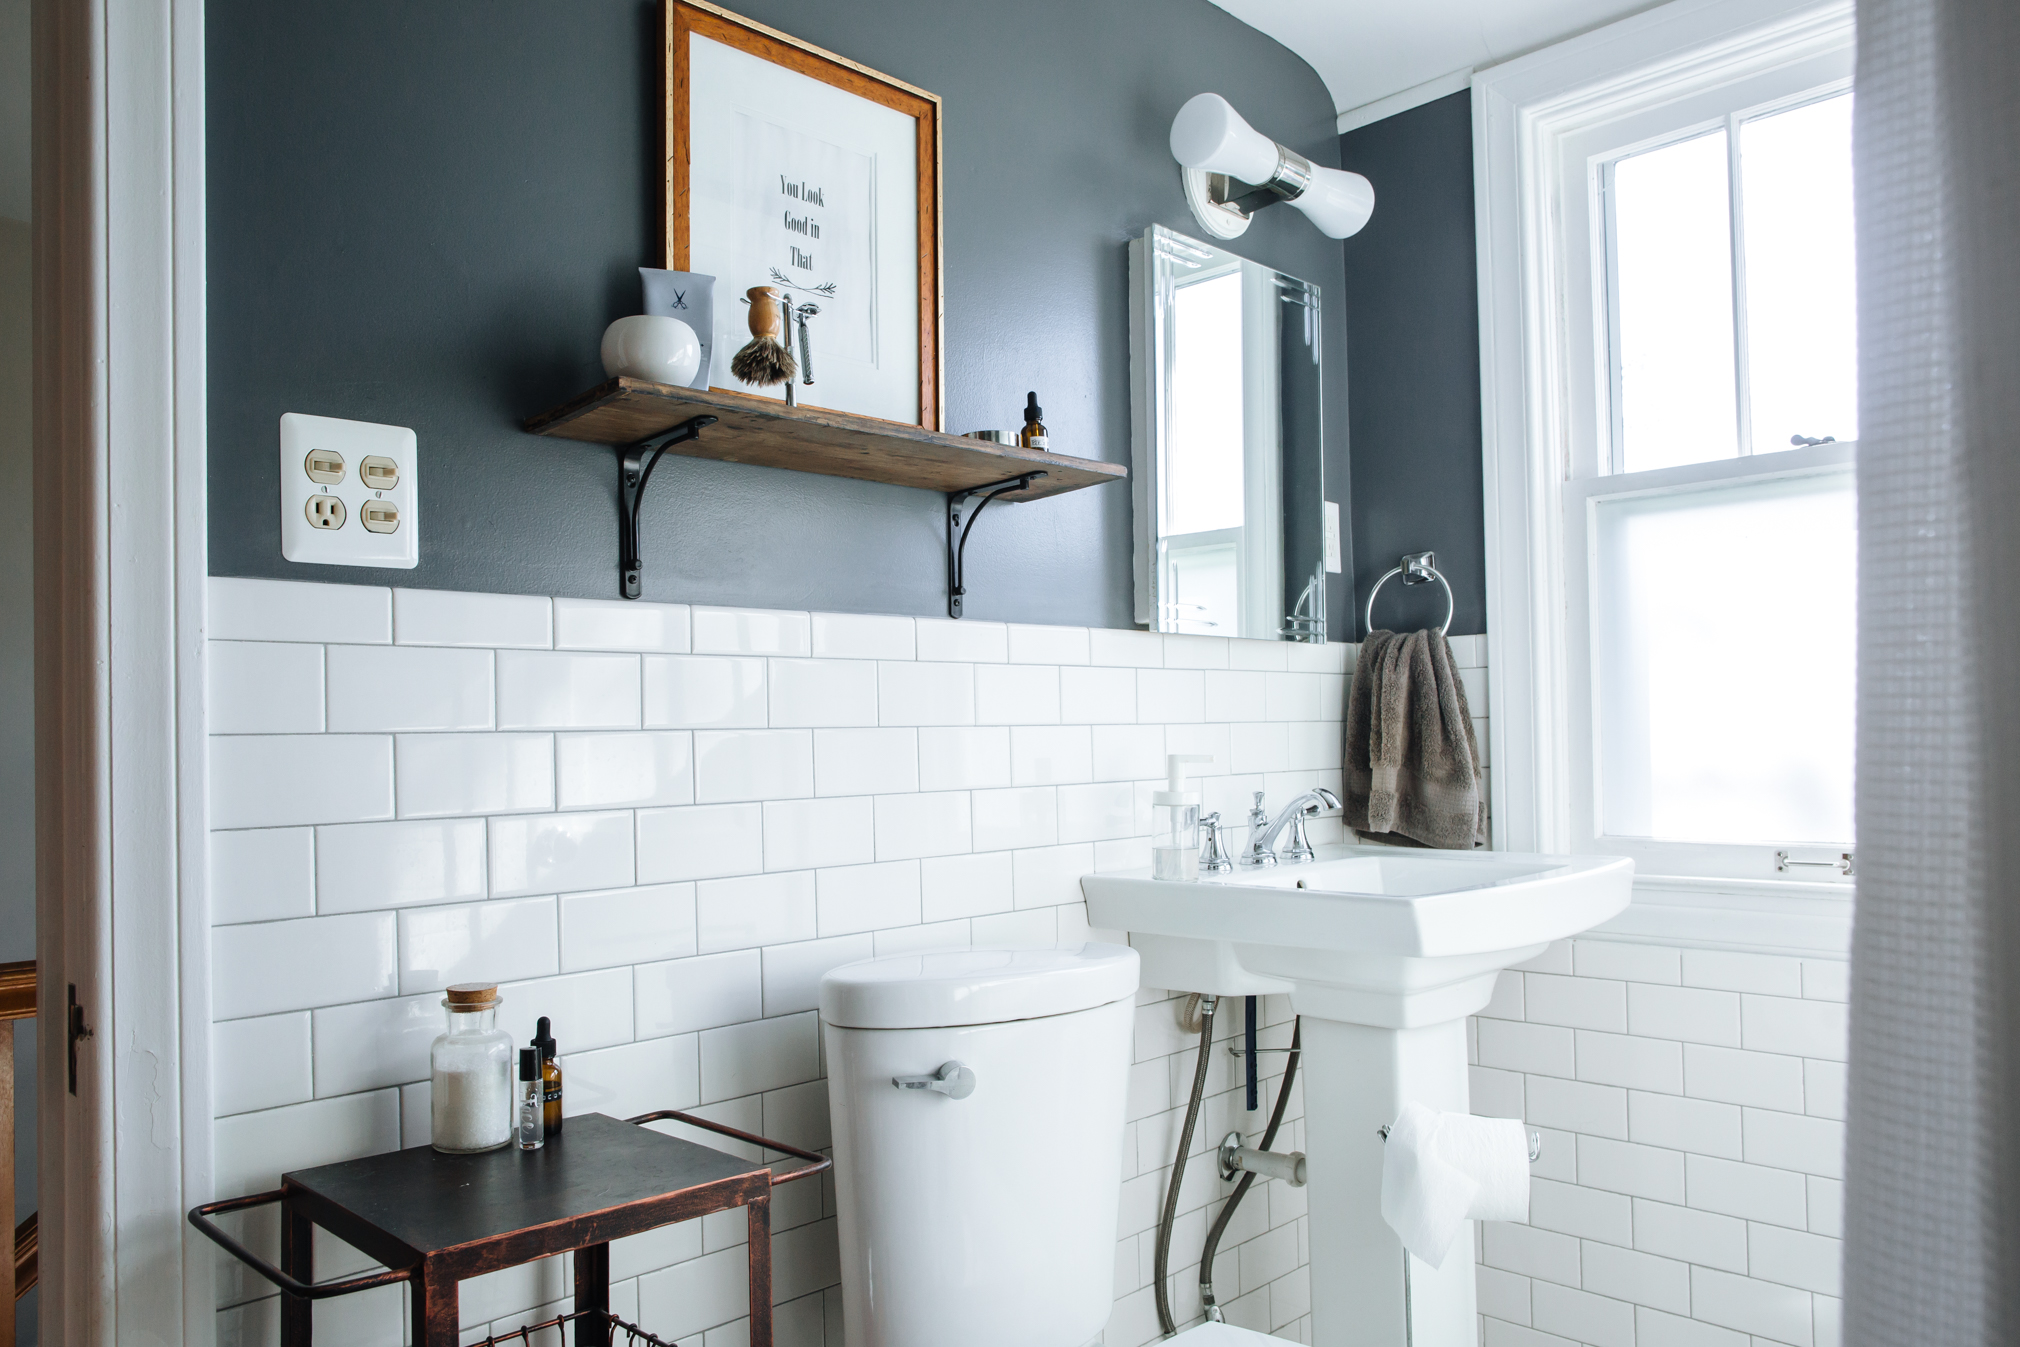 Best Paint Colors for Small Bathrooms | Apartment Therapy